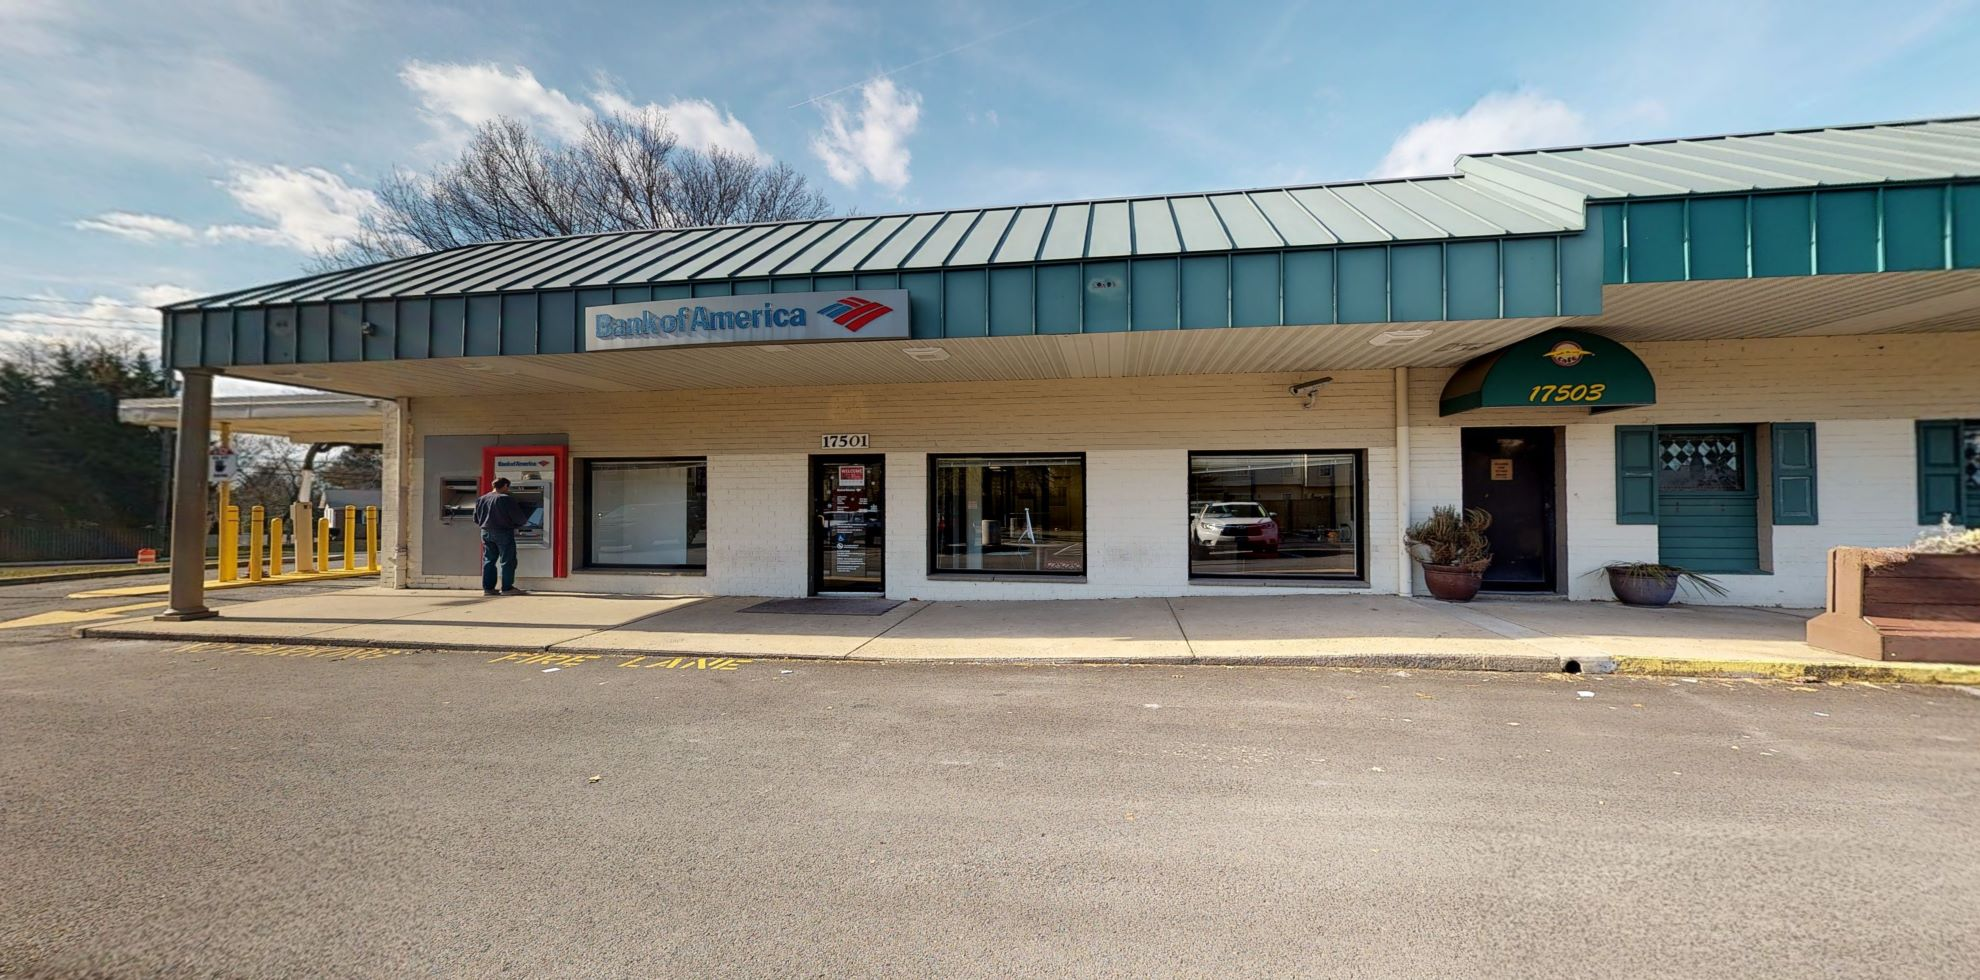 Bank of America financial center with walk-up ATM   17501 Redland Rd, Derwood, MD 20855